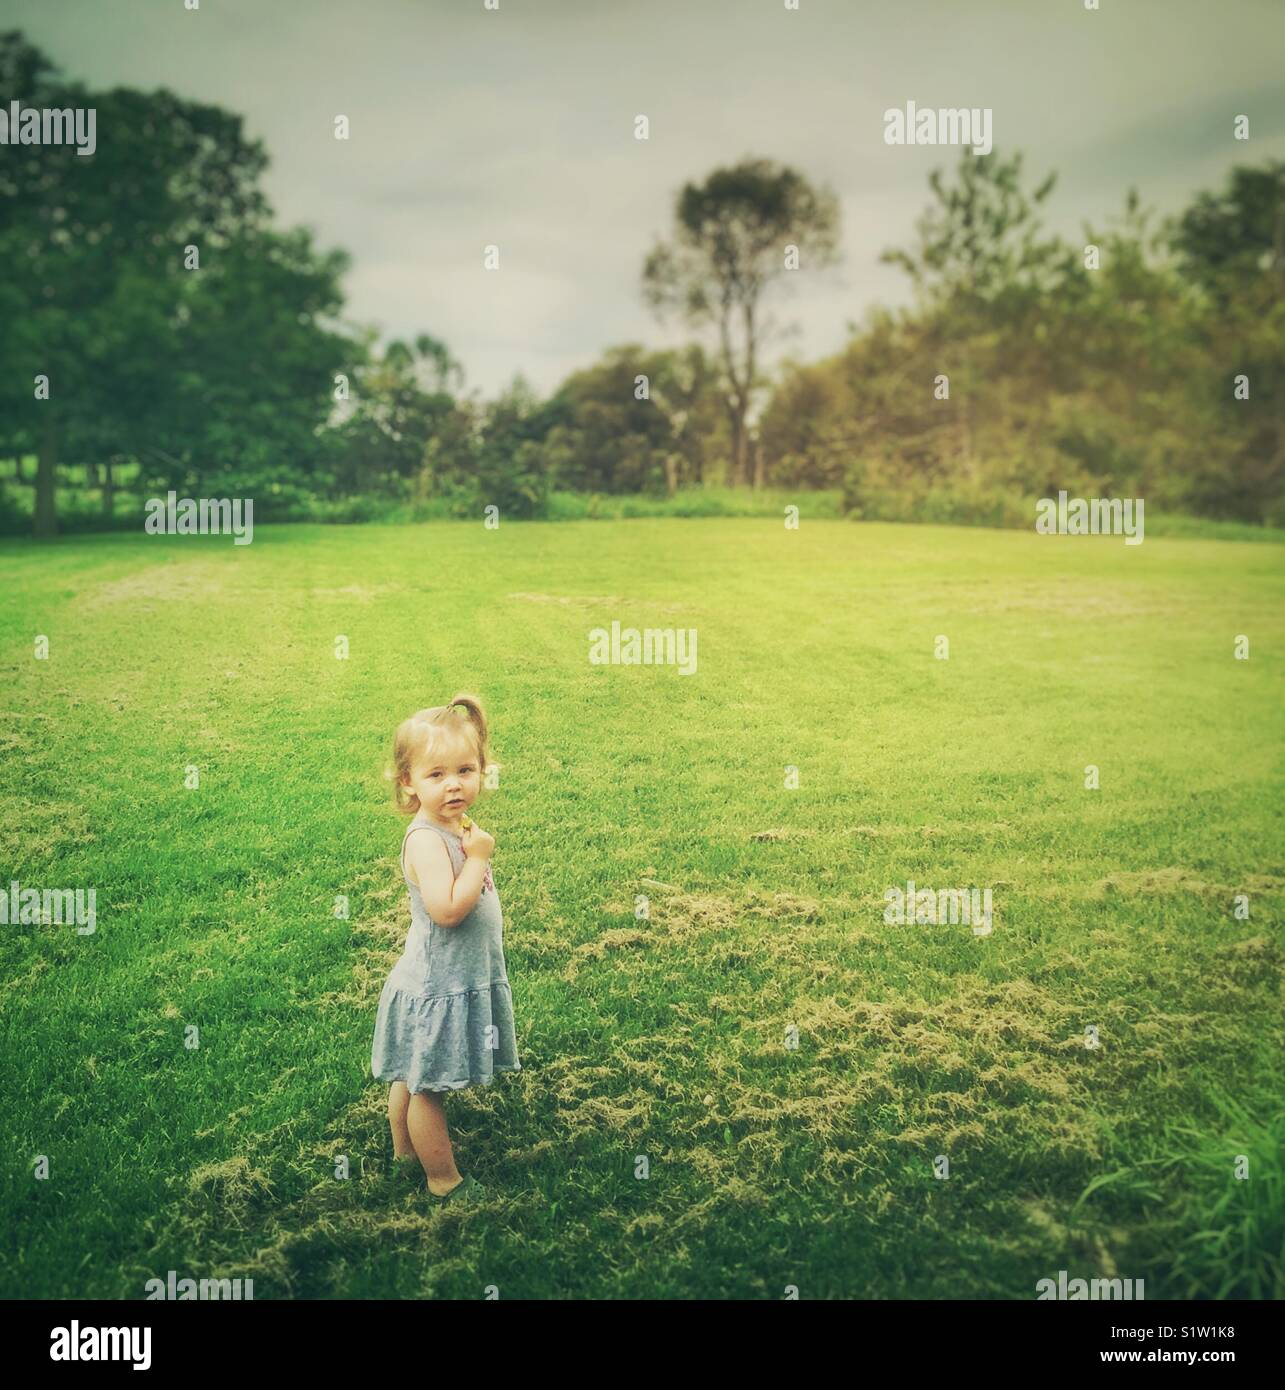 Toddler girl standing in grassy field with trees in the background - Stock Image